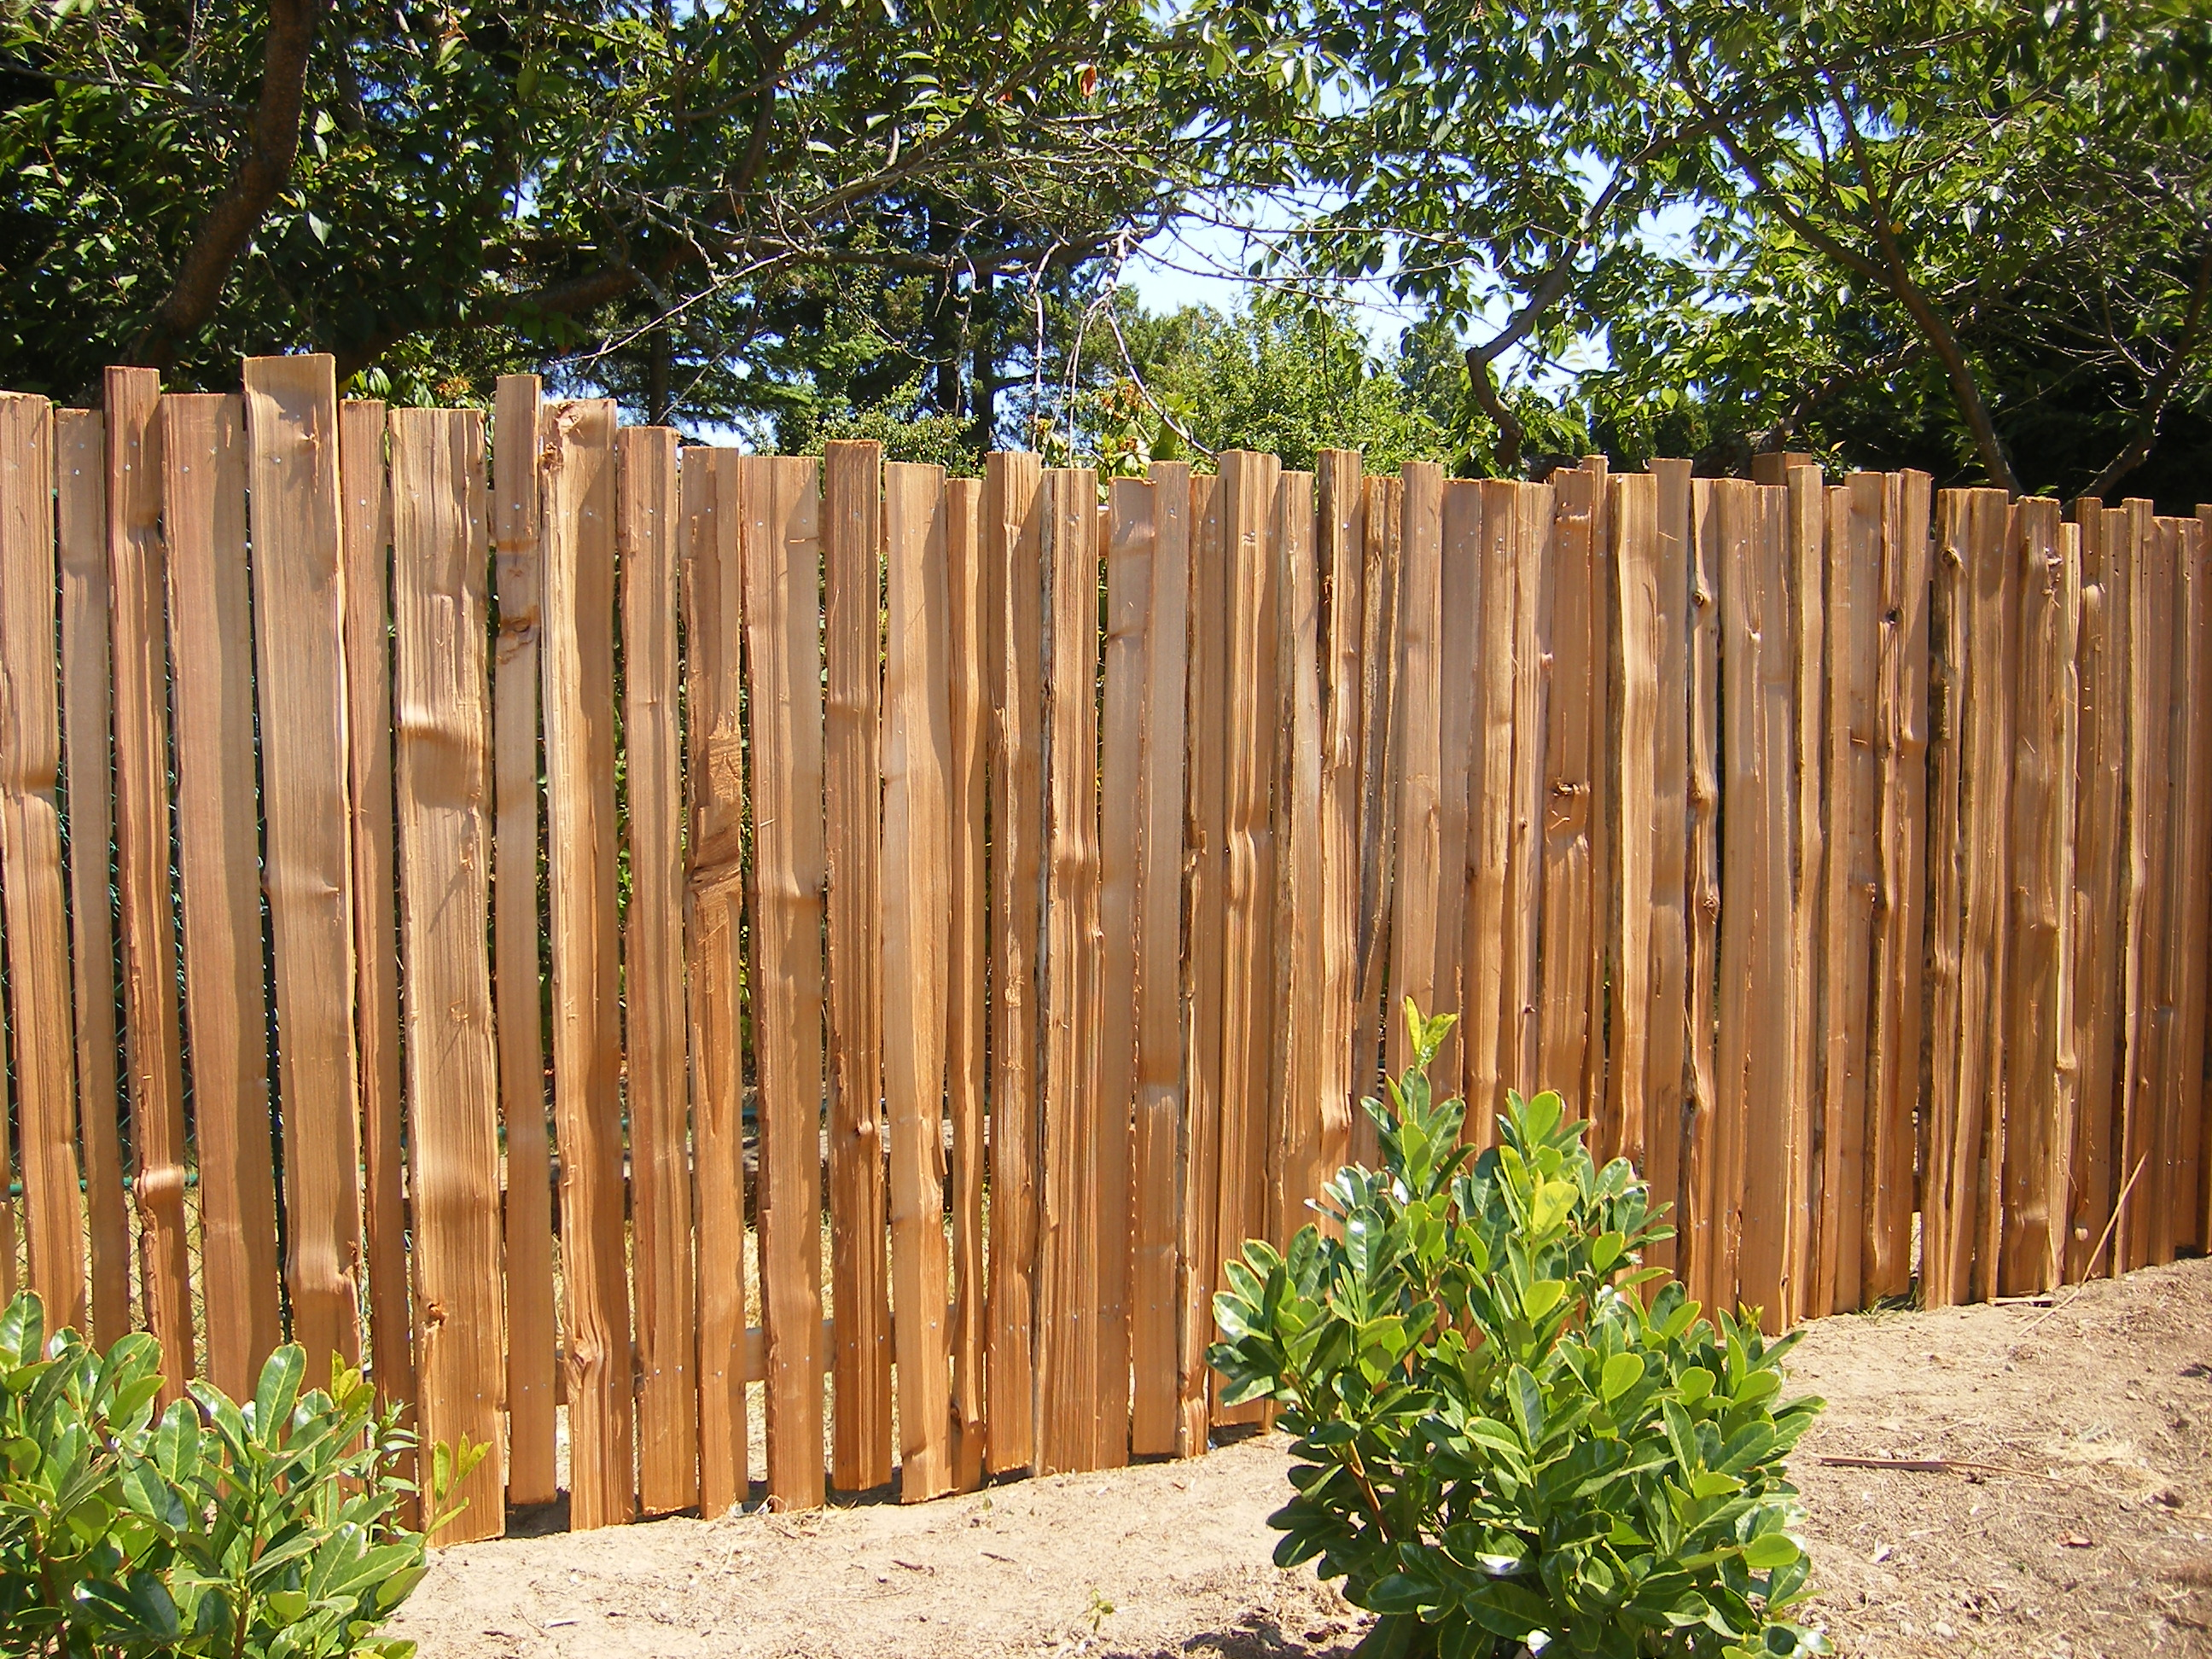 Dimished Art Of Quot Hand Spitting Quot Grapestake Fencing Fence